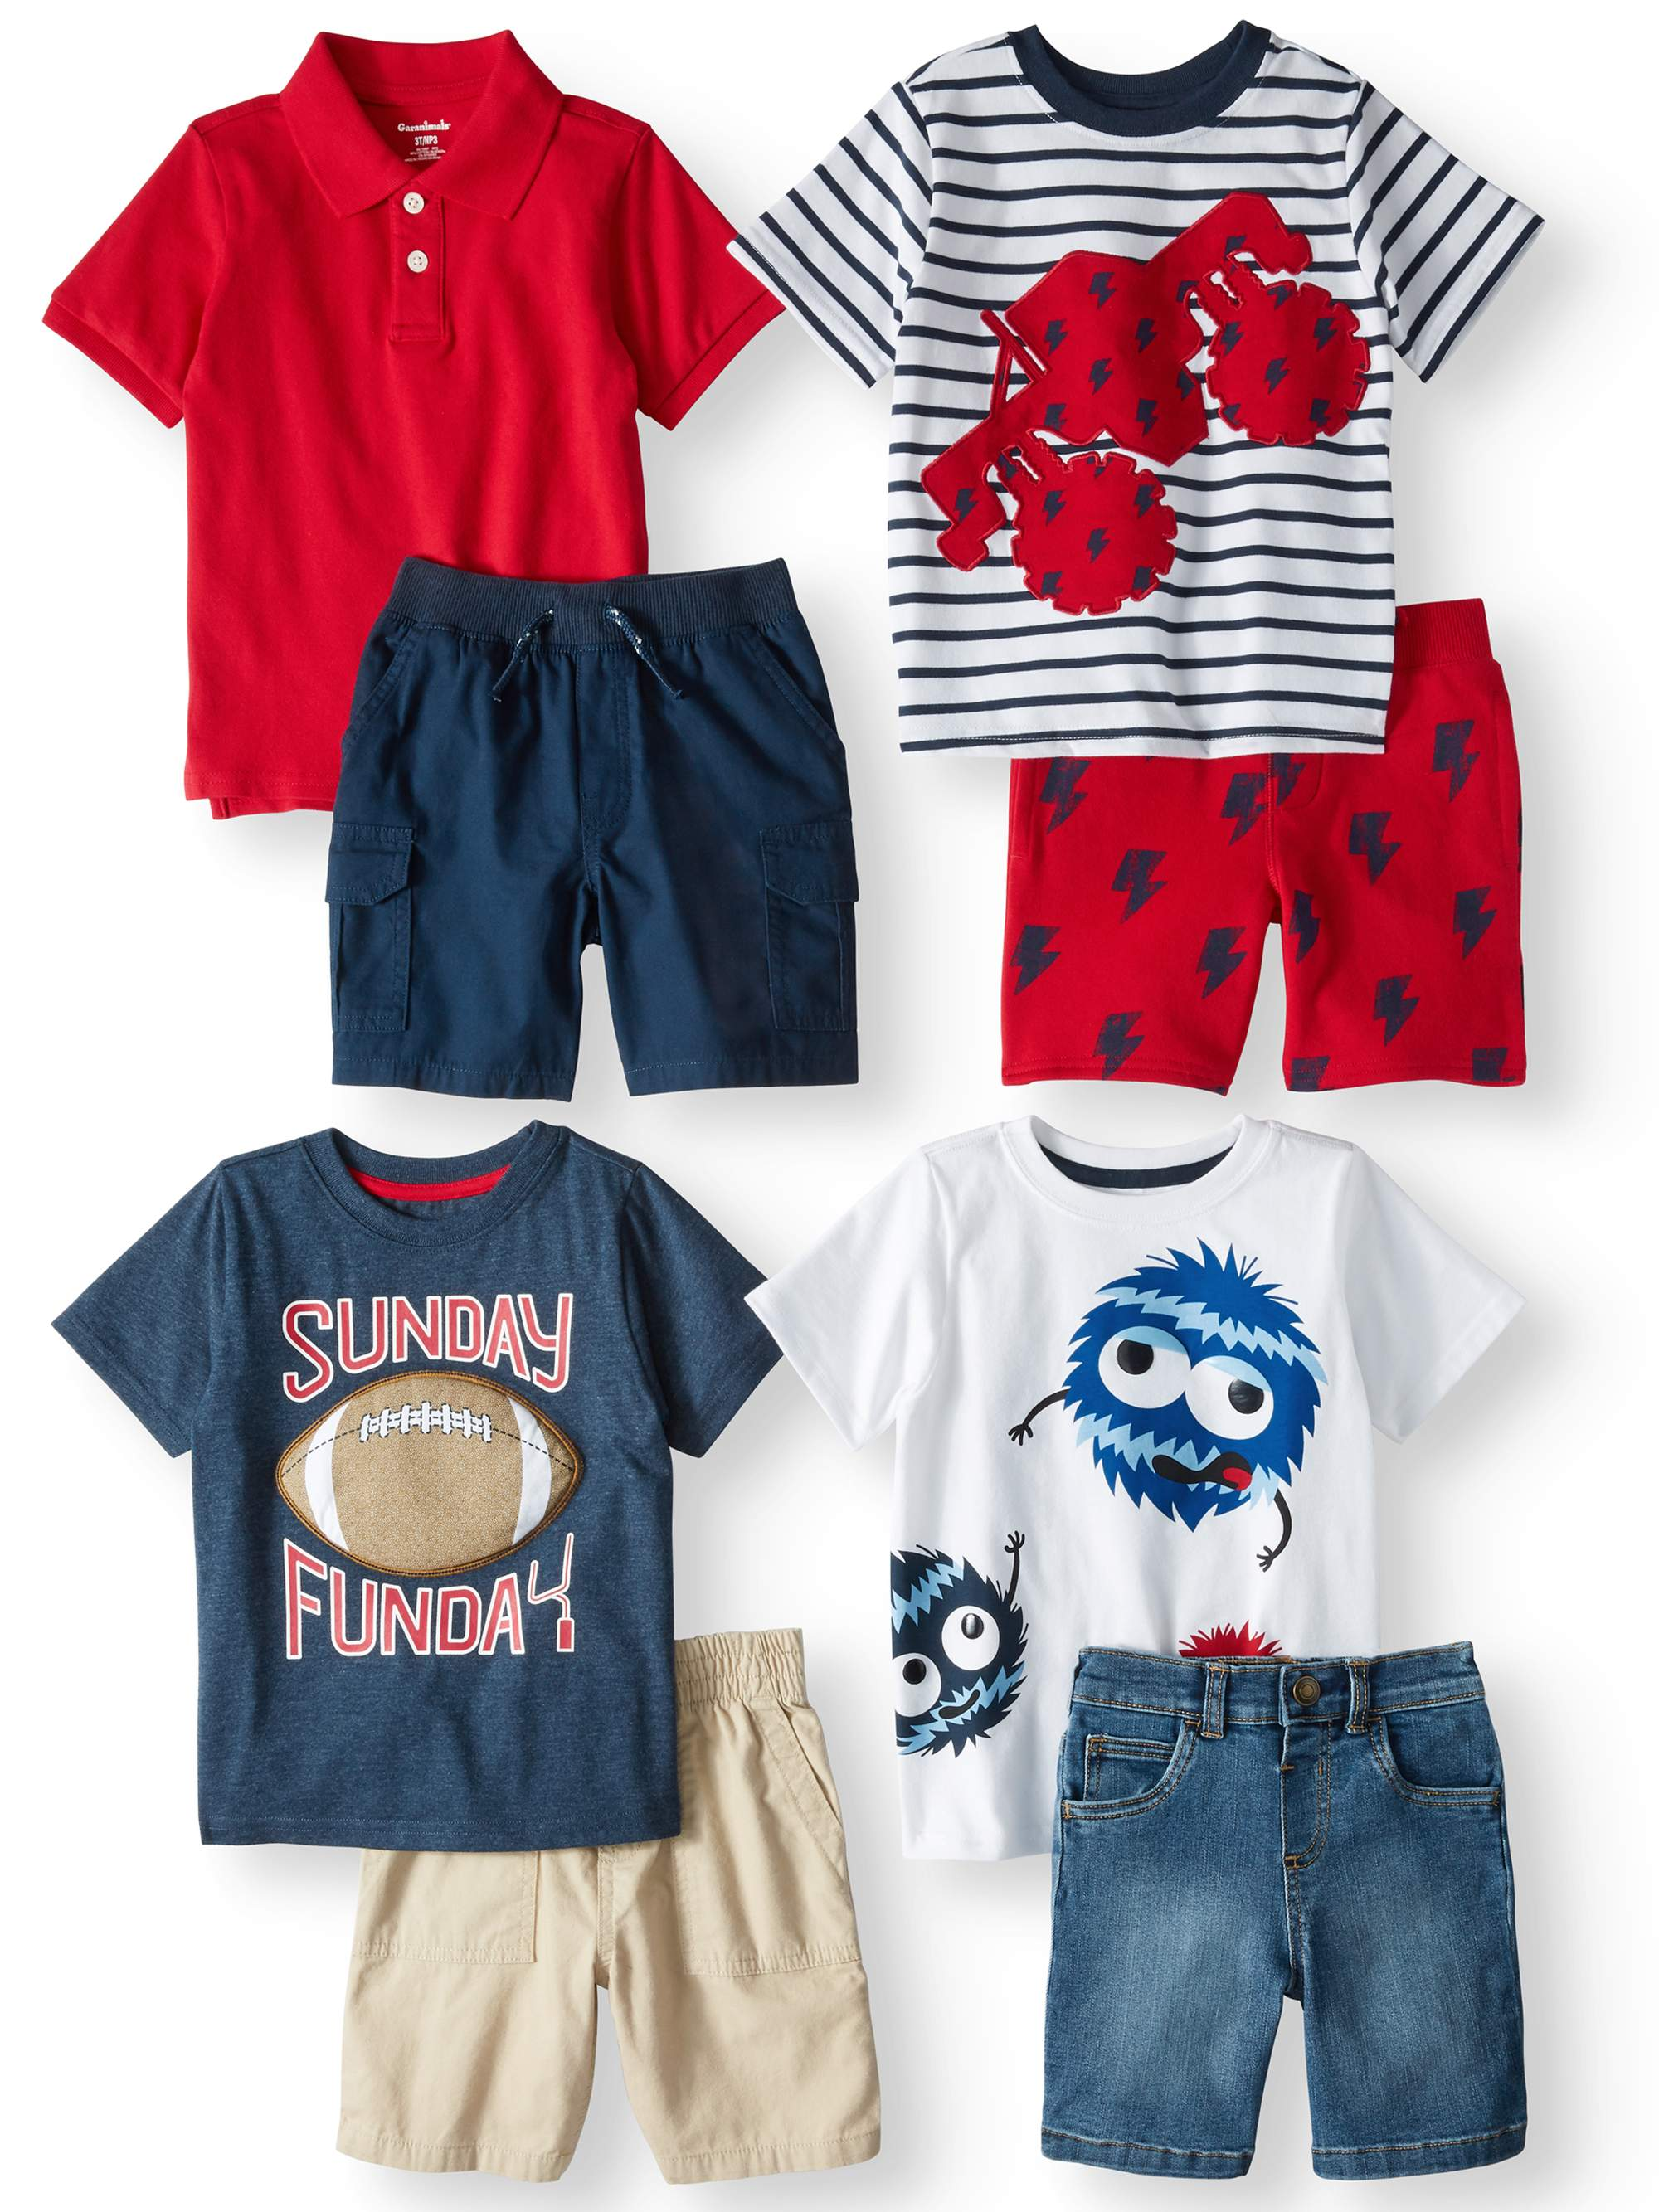 8a6fdaf05 Garanimals - Mix & Match Outfits Kid-Pack Gift Box, 8pc Set (Toddler Boys)  - Walmart.com